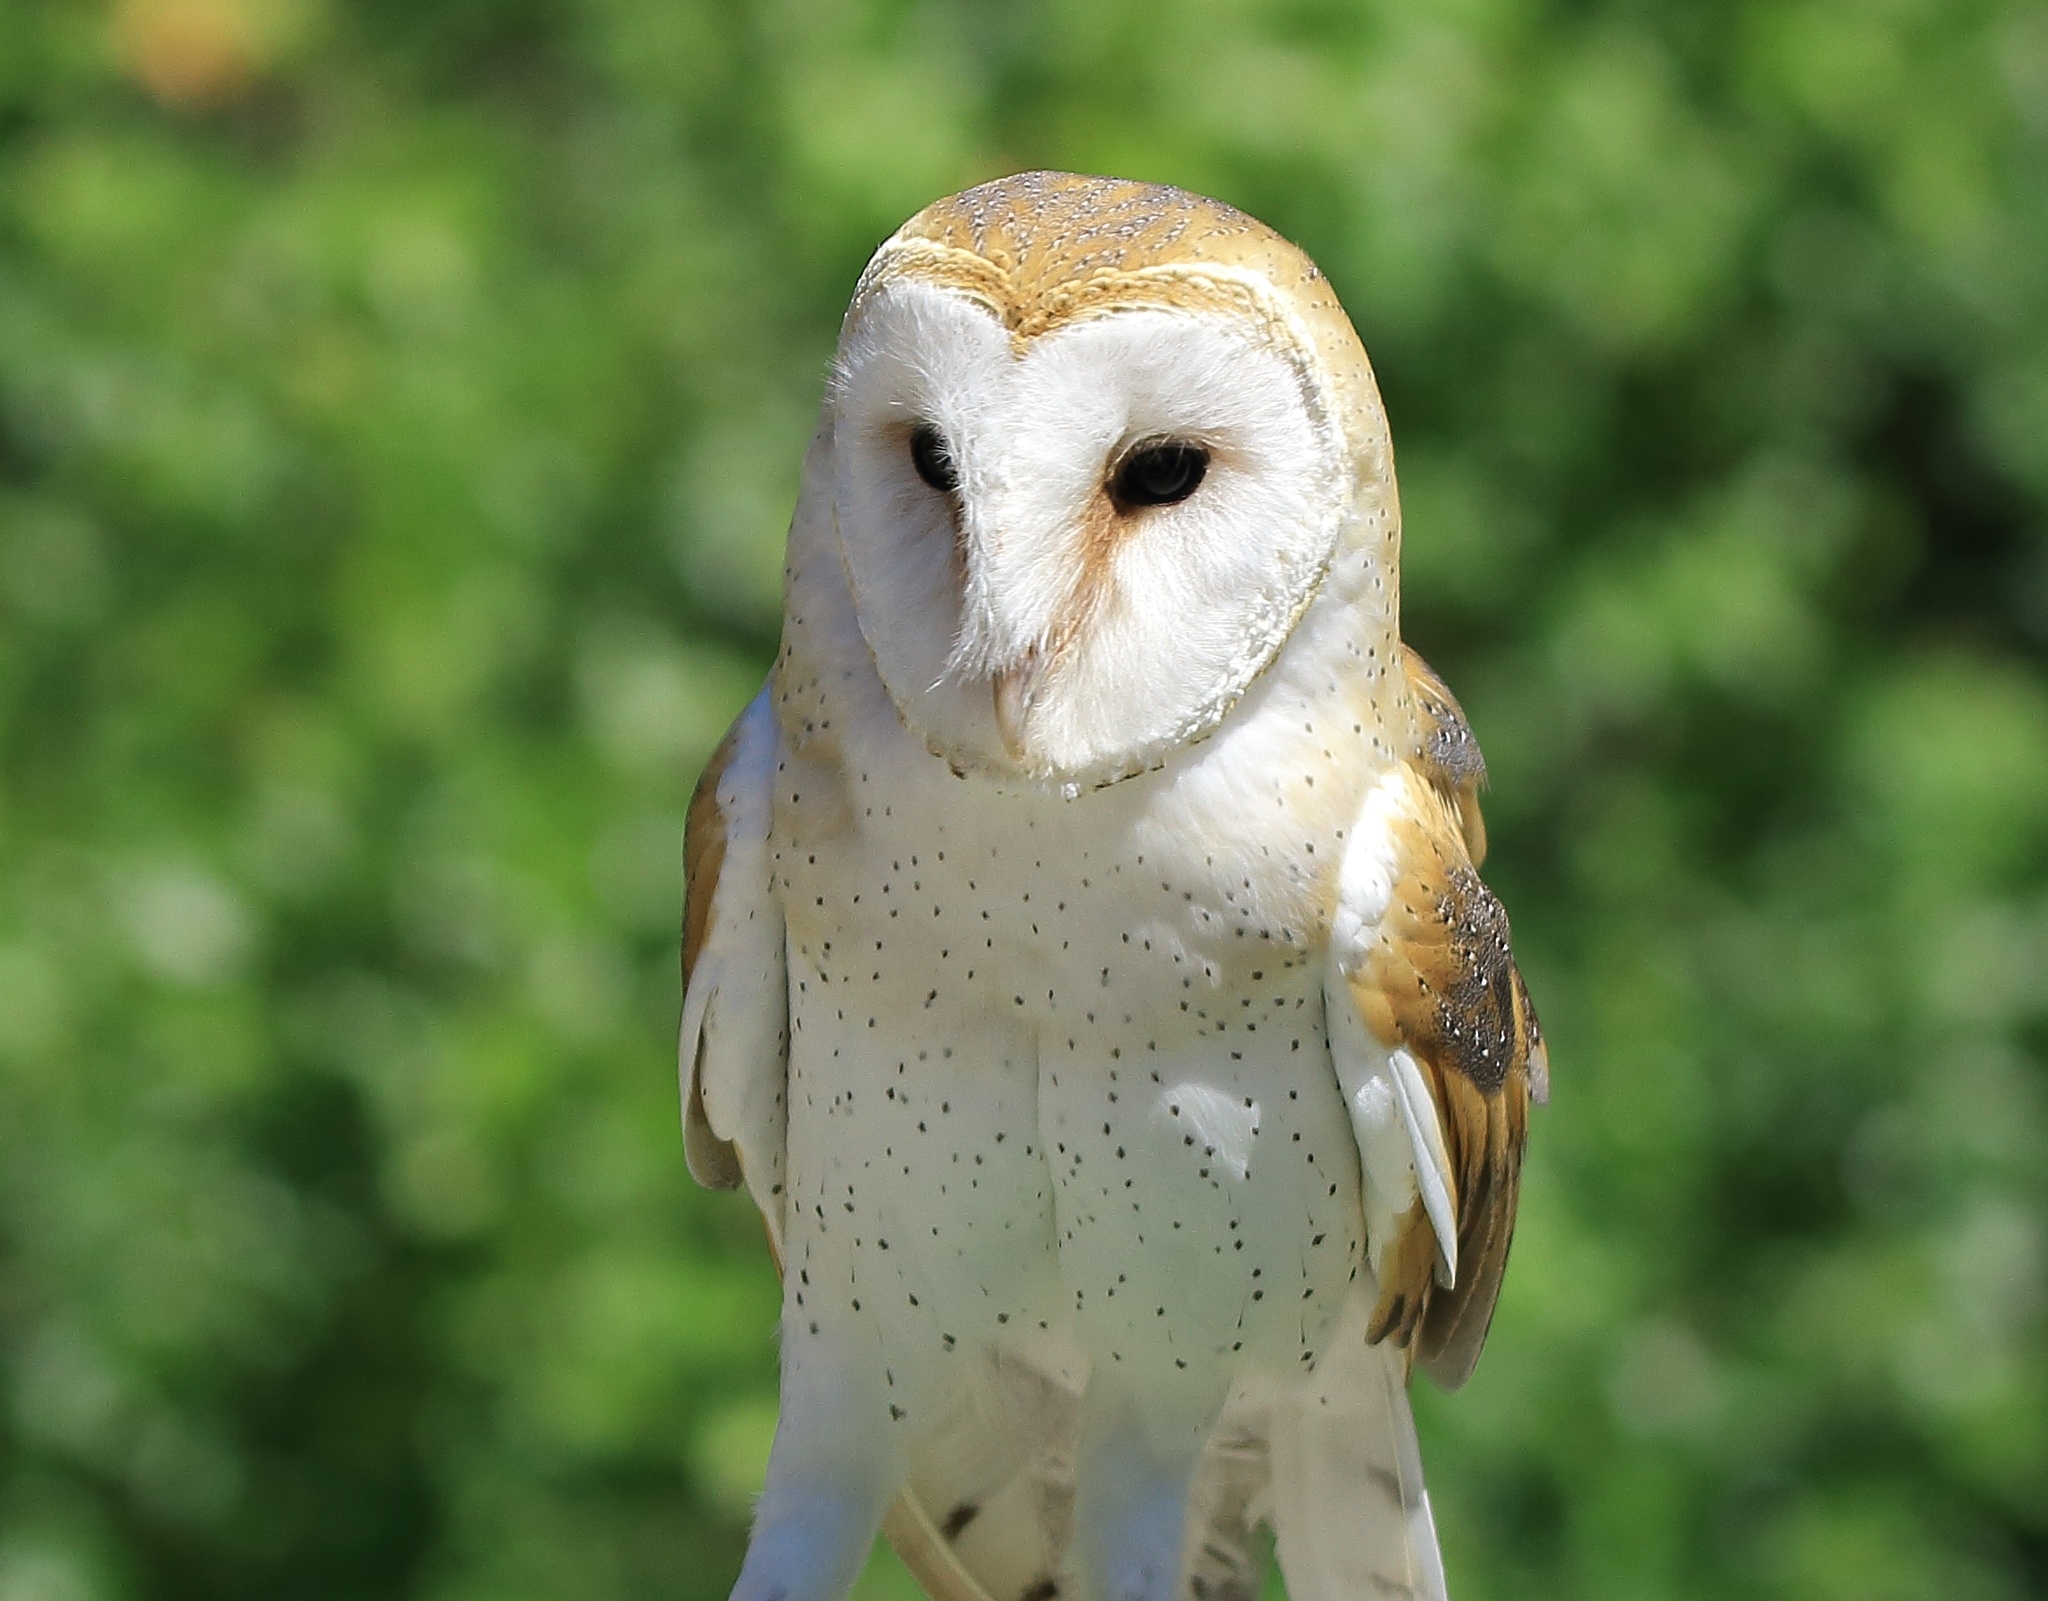 Barn Owl by Ricky Wong